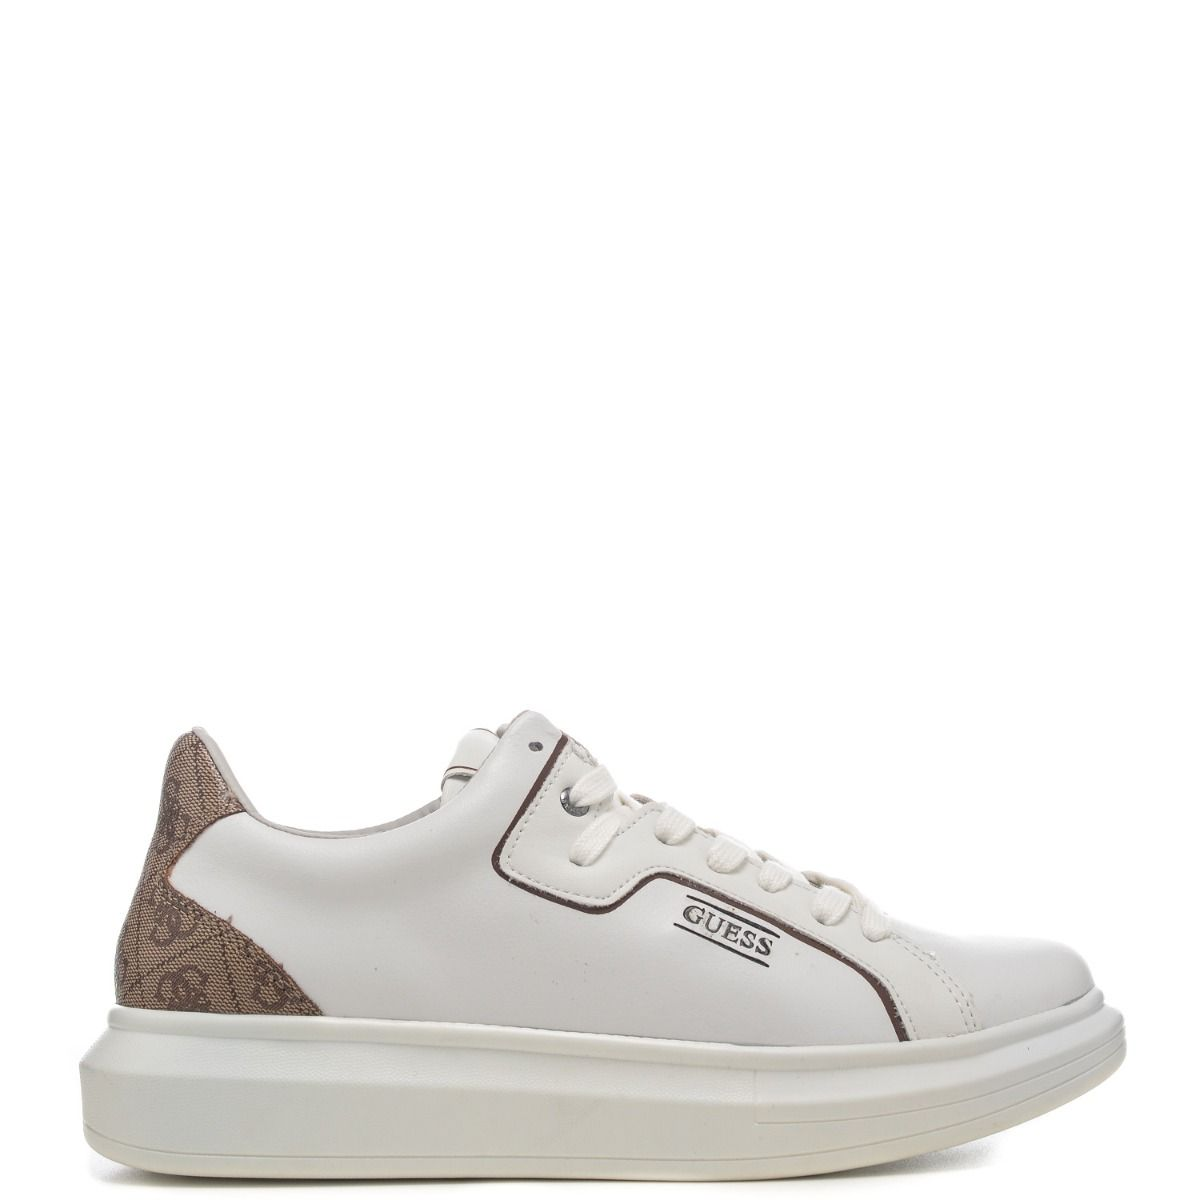 Guess sneakers Salerno FM6SALFAL12